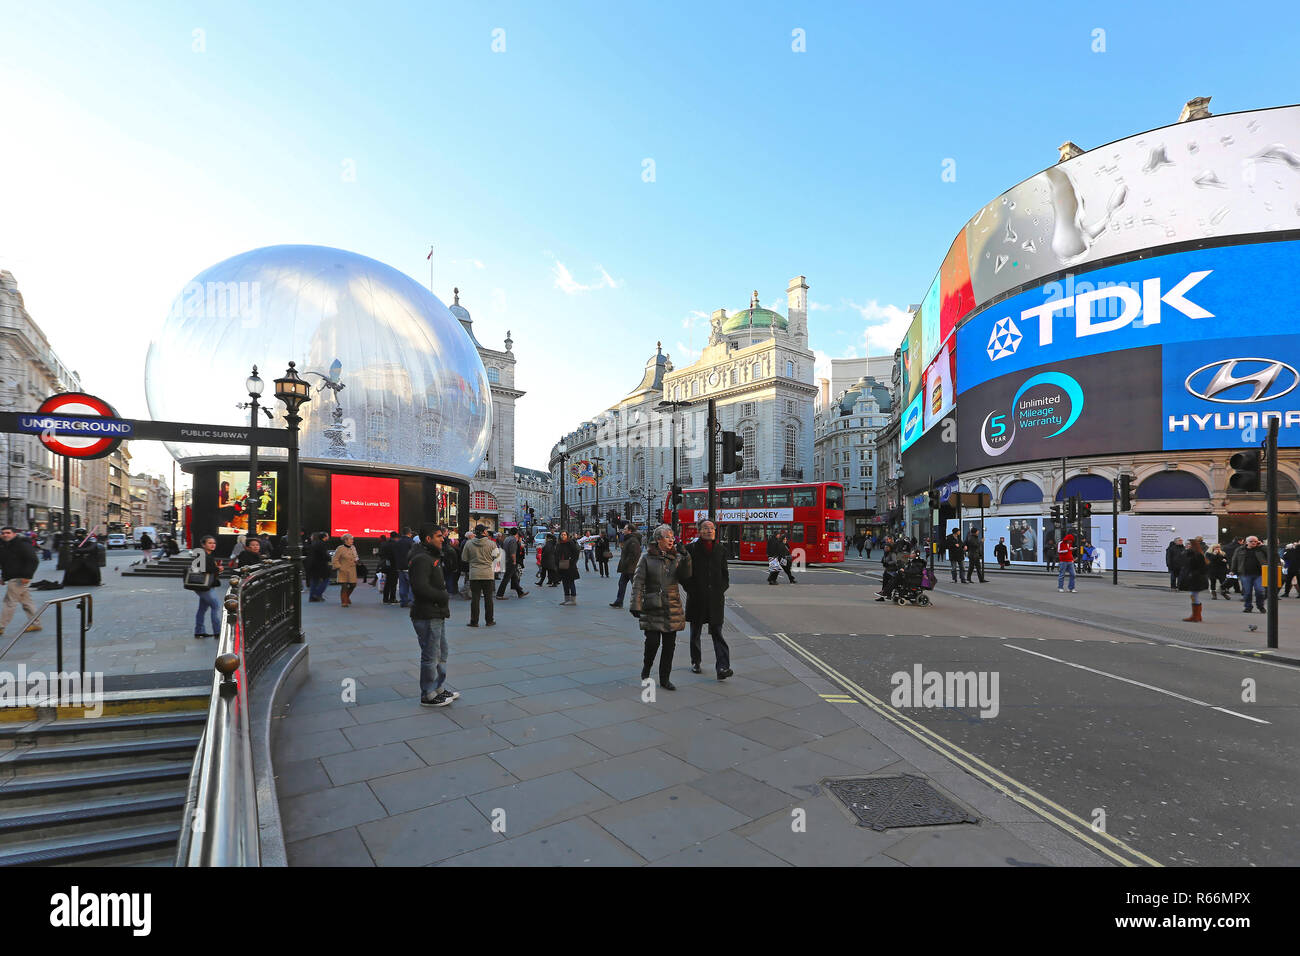 LONDON, UNITED KINGDOM - NOVEMBER 19: Christmas at Piccadilly Circus in London on NOVEMBER 19, 2013. Big snow globe with Eros Statue at Piccadilly Cir Stock Photo